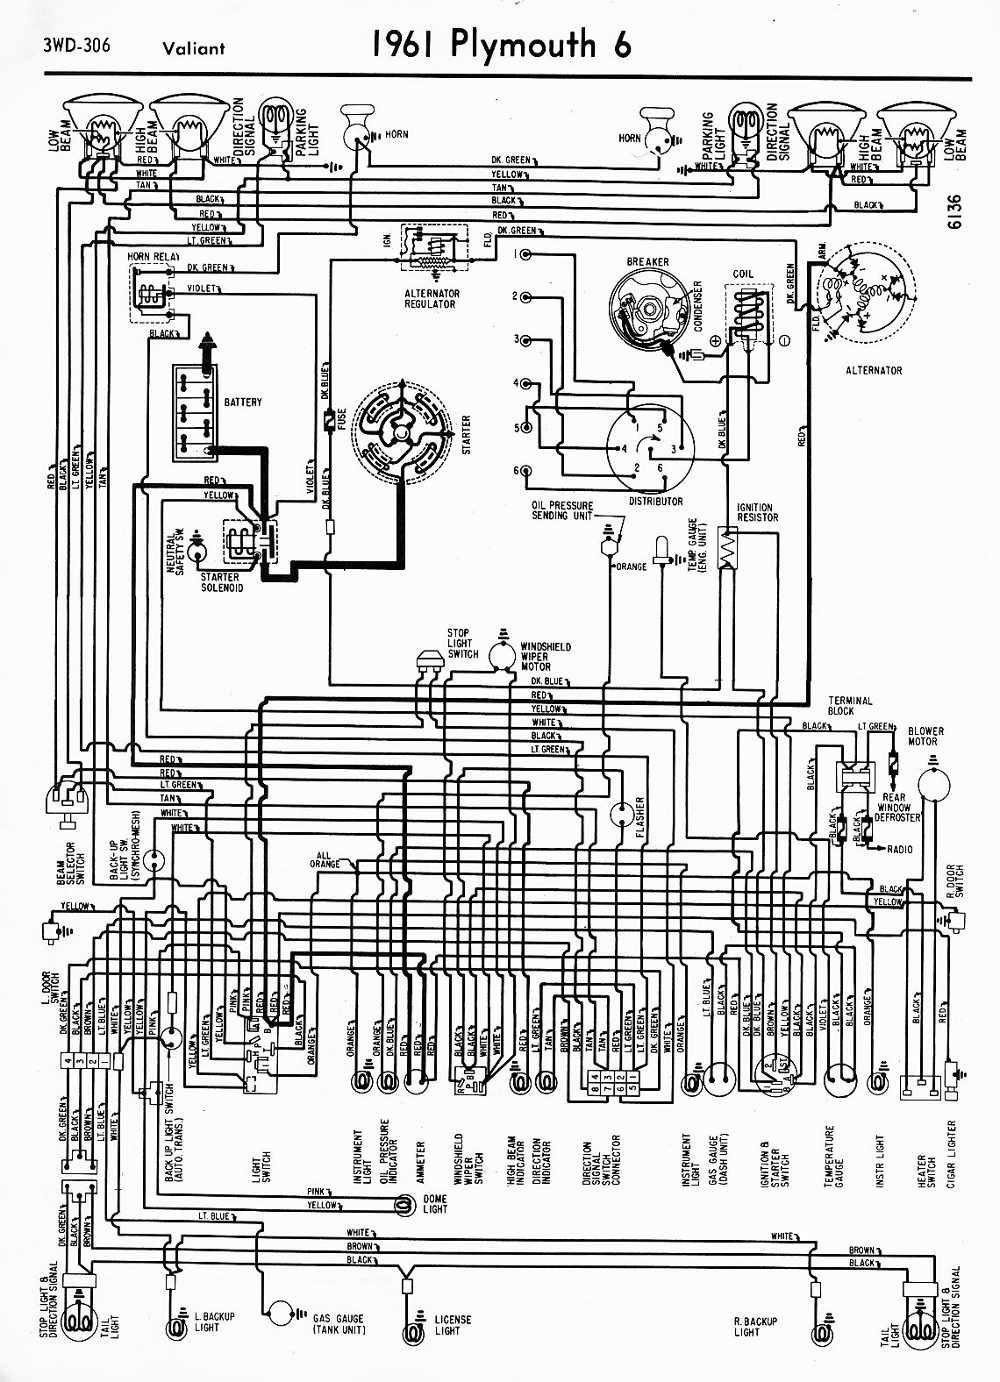 wiring diagrams of 1961 plymouth 6 valiant?t\\\\\\\=1508746019 1970 dodge dart wiring diagram 1970 dodge dart colors \u2022 free 64 valiant wiring diagram at bayanpartner.co